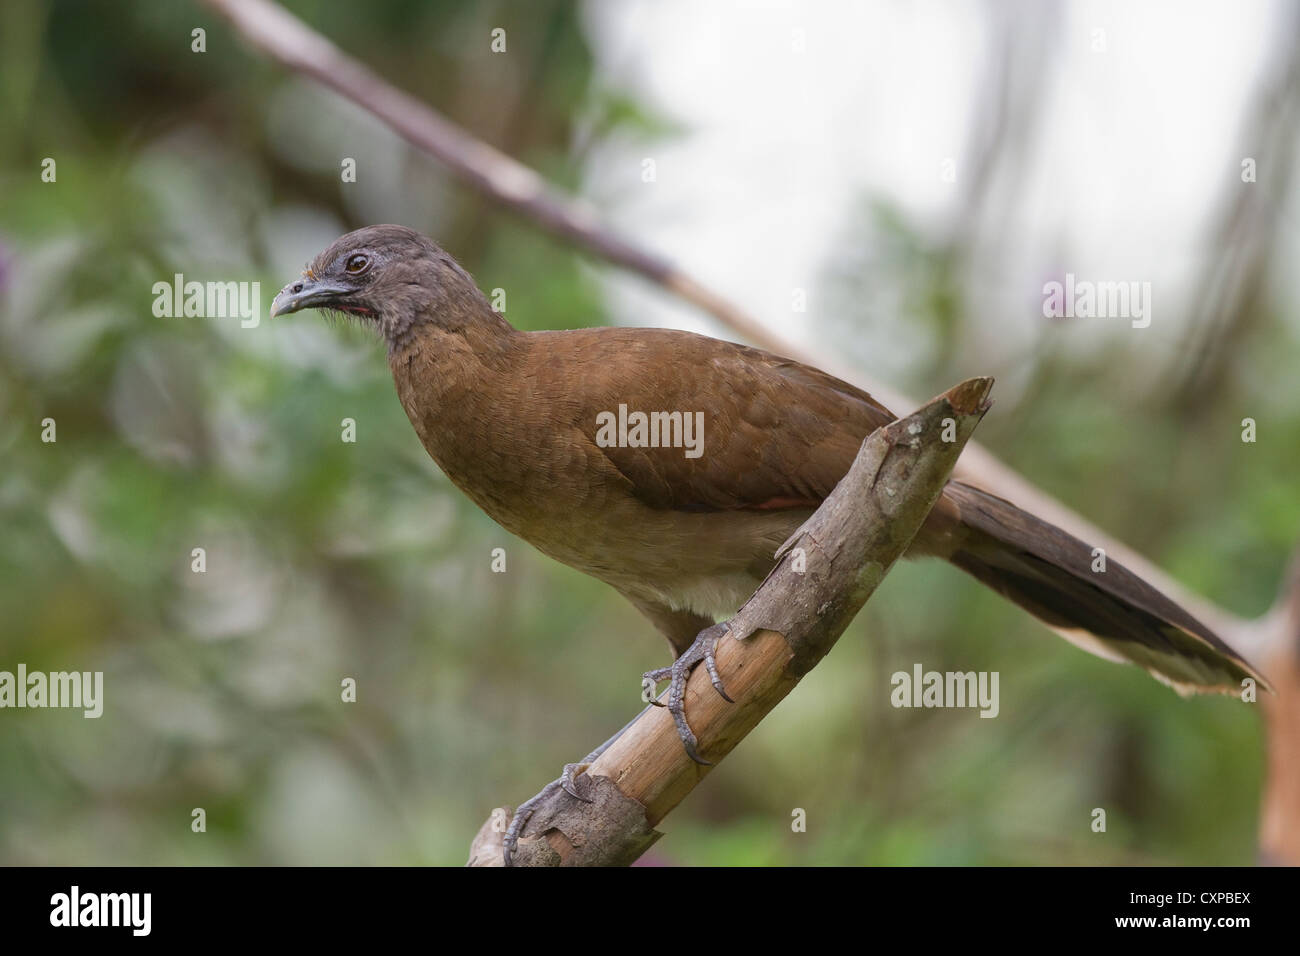 Gray-headed Chachalaca (Ortalis cinereiceps) on grounds of Rancho Naturalista near Turrialba, Costa Rica. - Stock Image